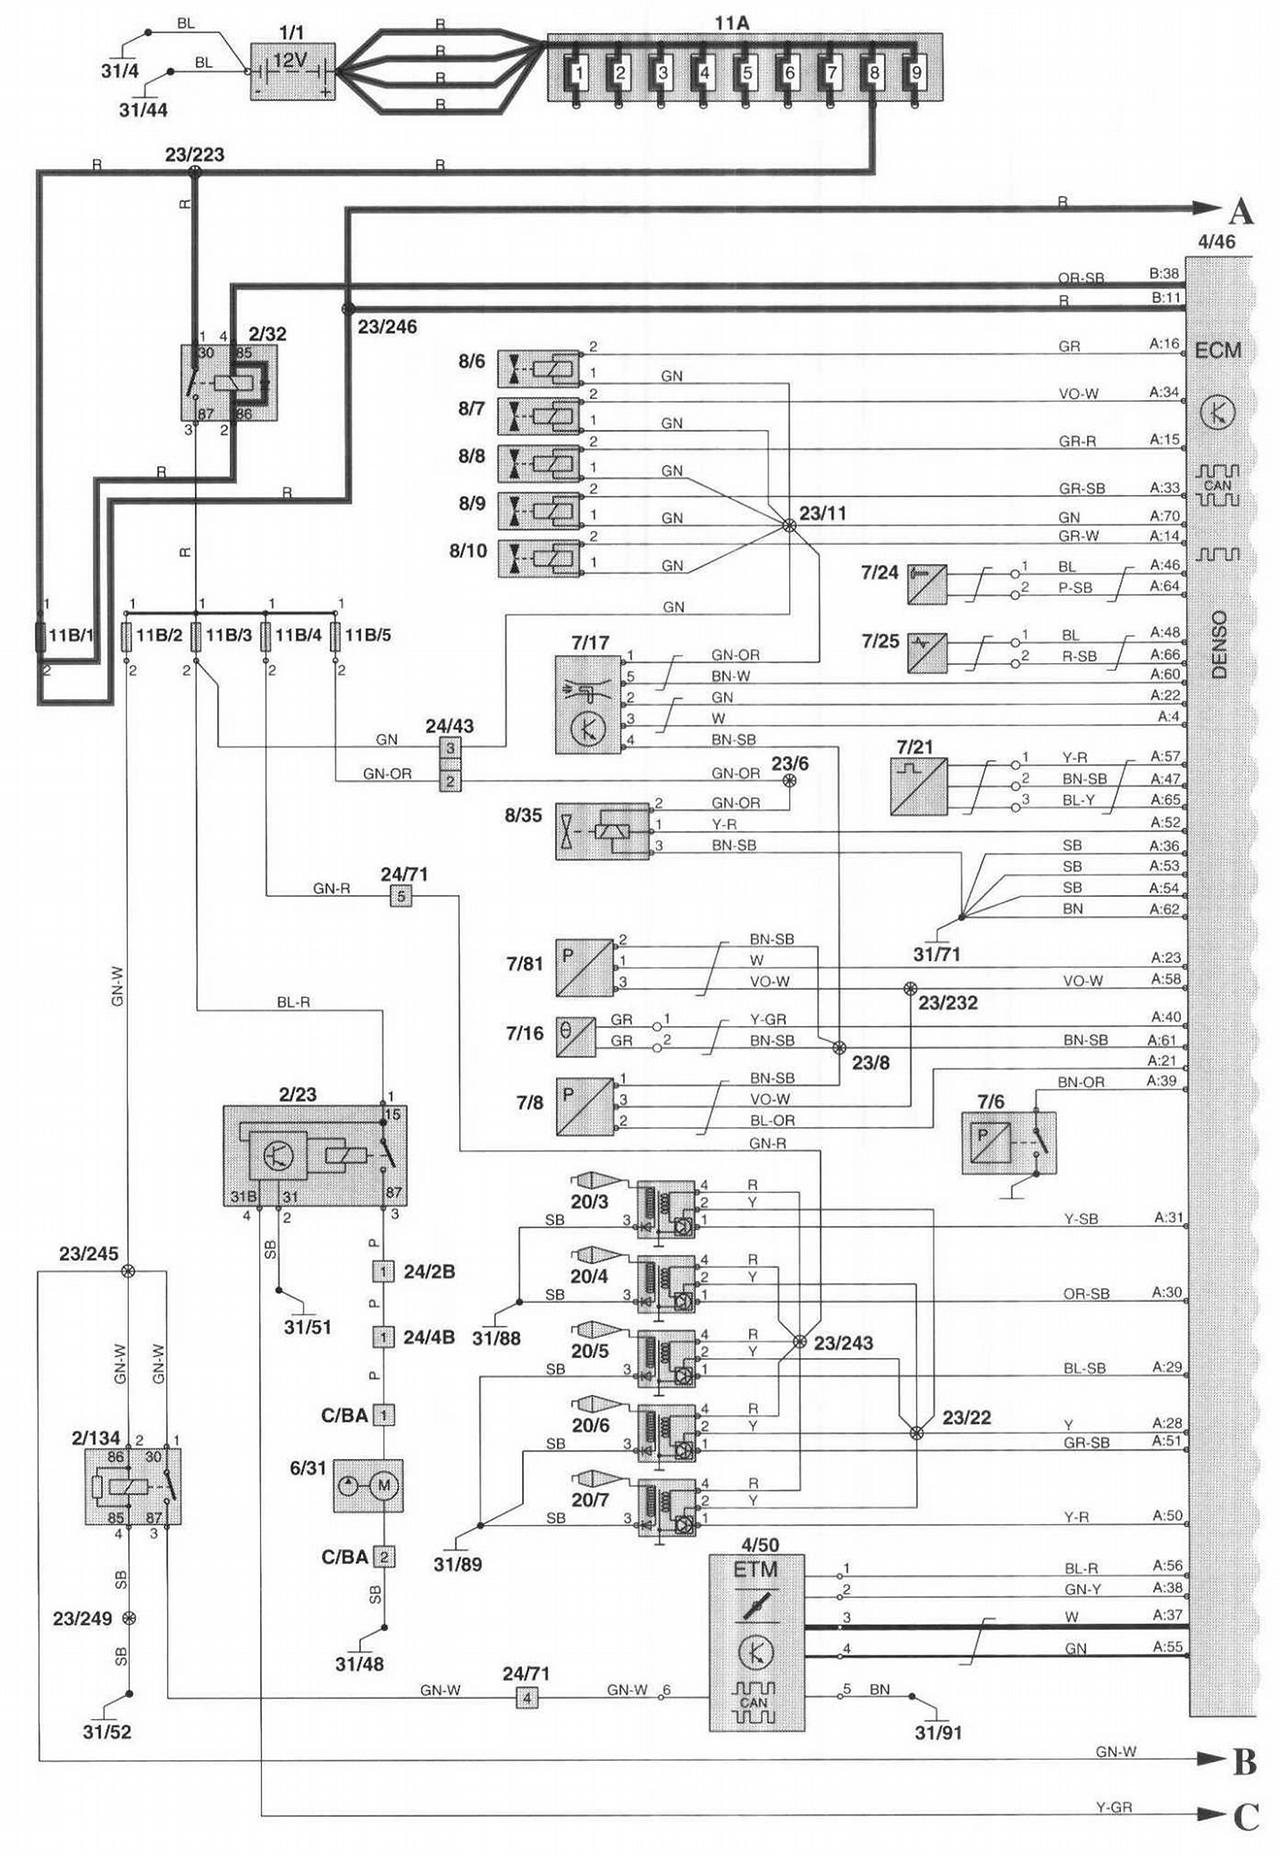 1997 volvo wiring diagrams wiring diagram centre1997 volvo v70 wiring diagram wiring diagram namewire diagram 99 volvo v70 wiring diagram more 1997